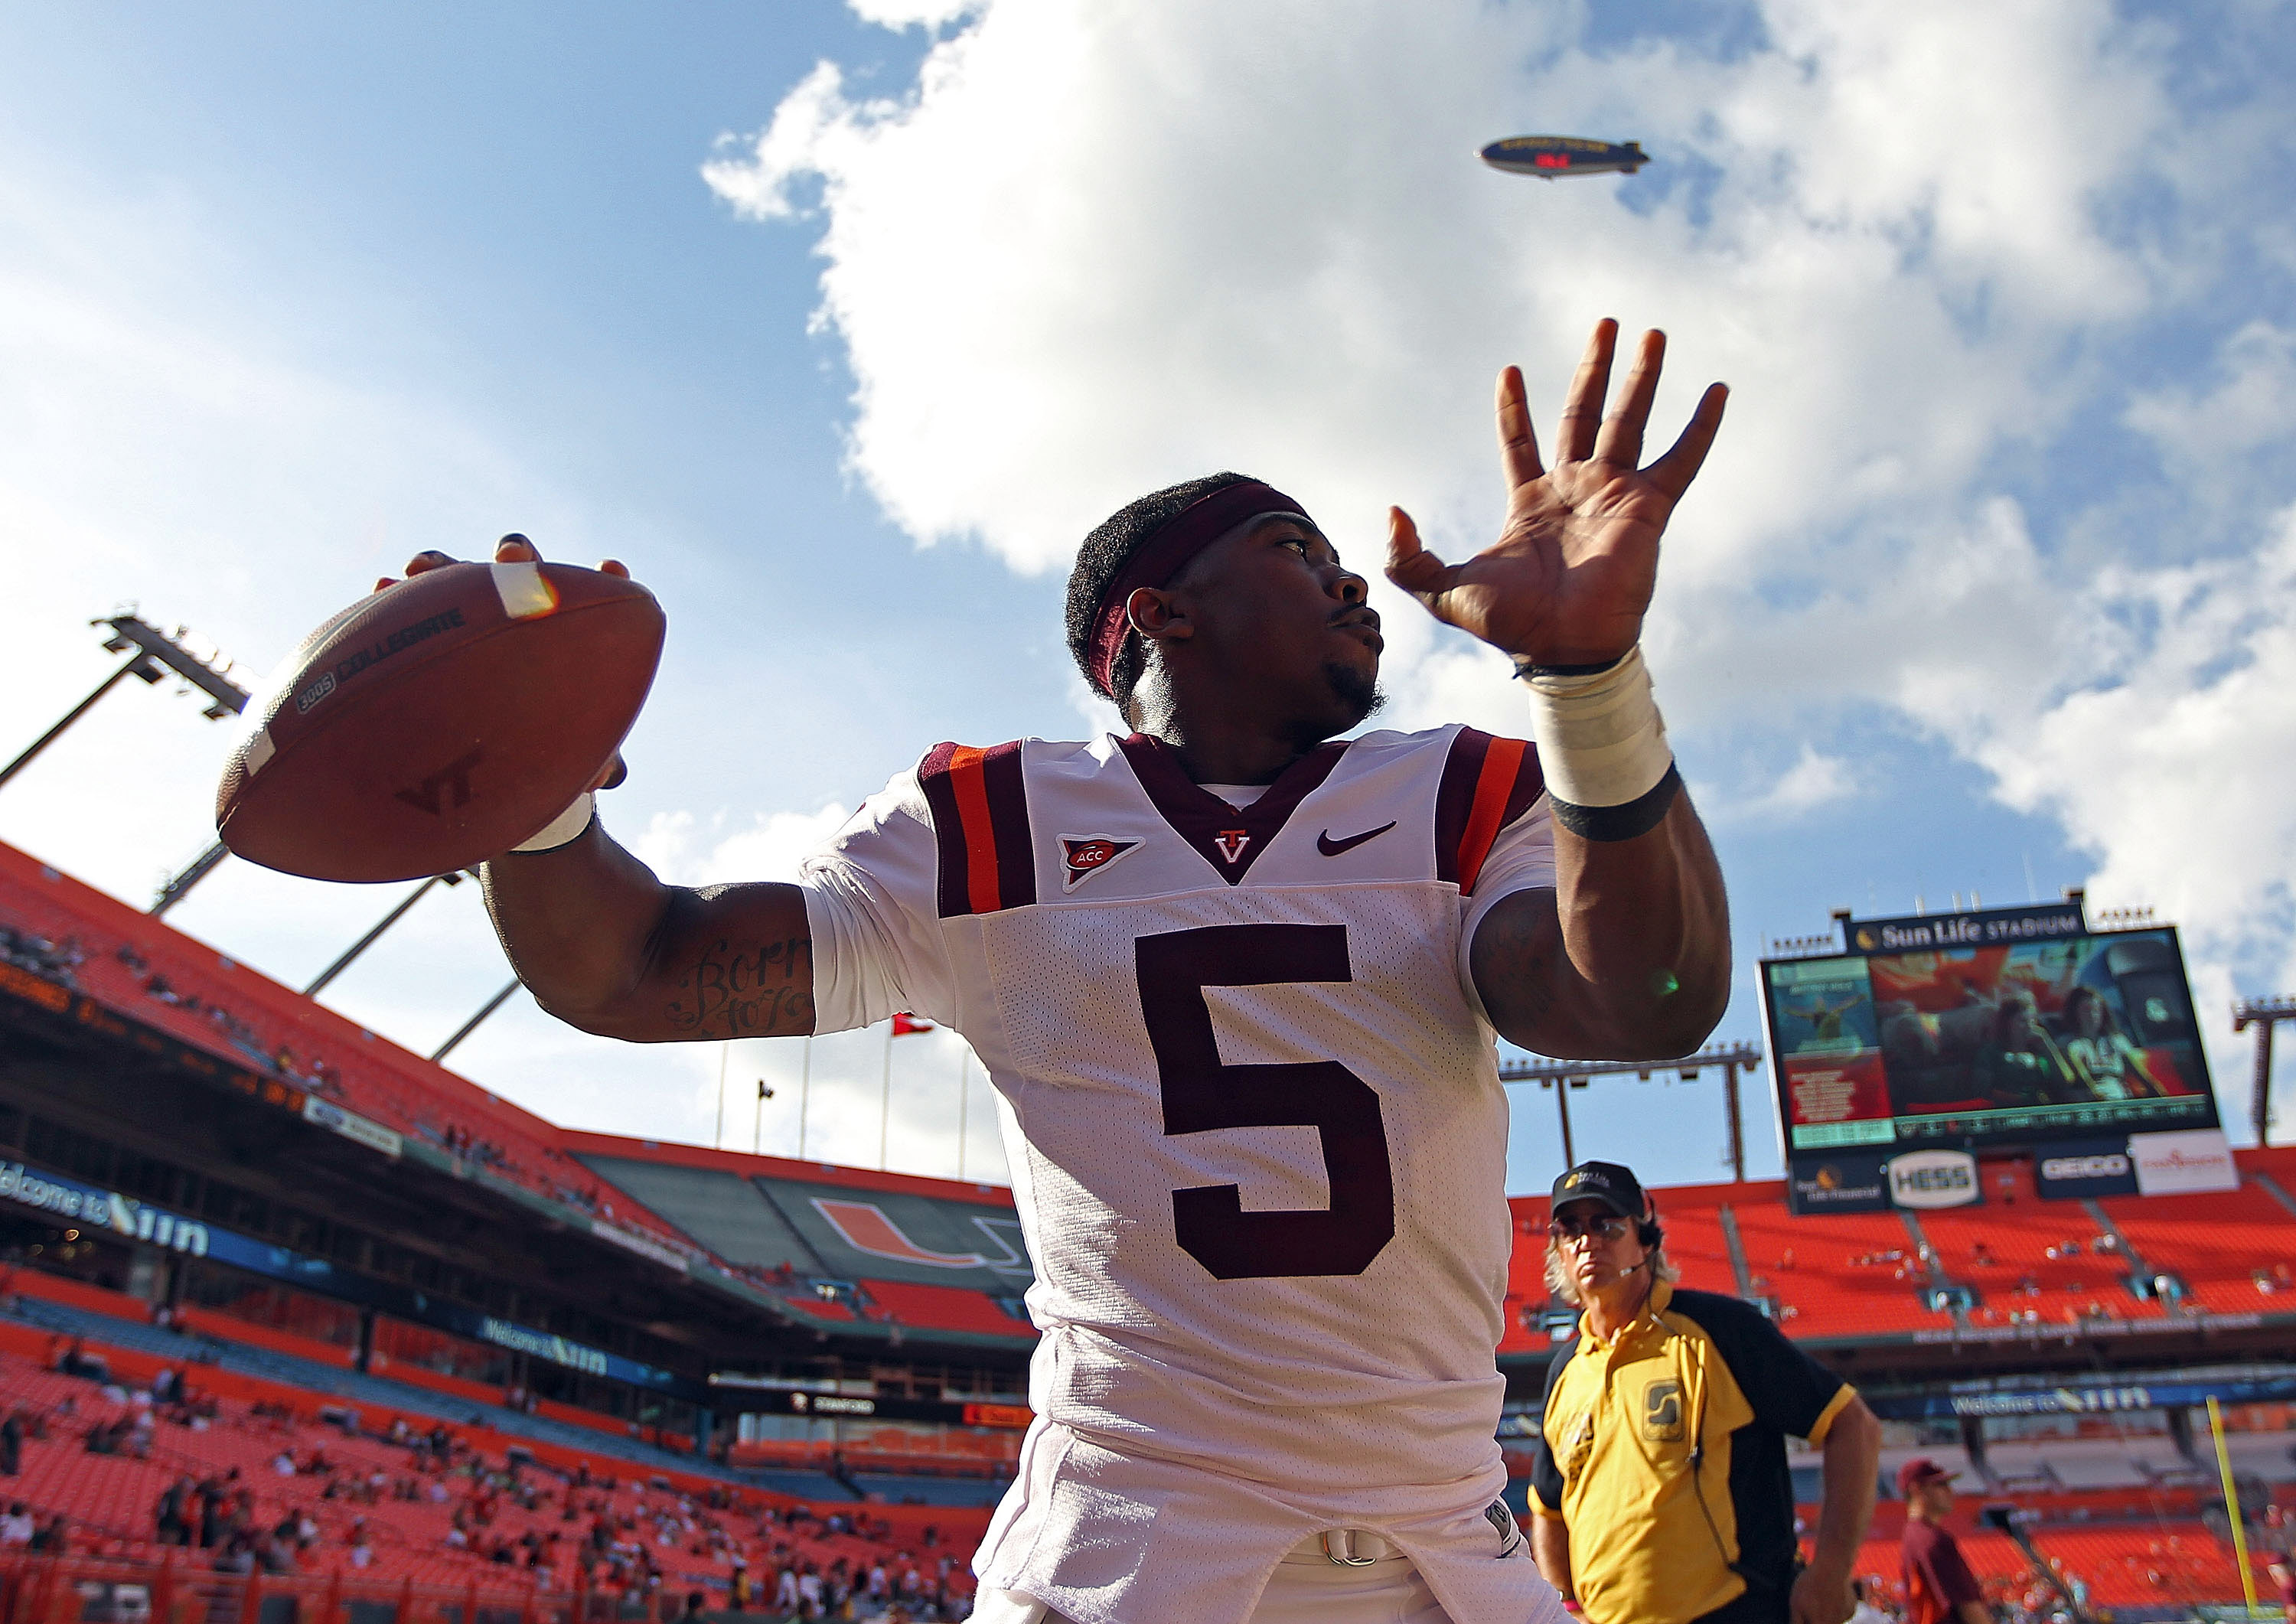 MIAMI - NOVEMBER 20:  Tyrod Taylor #5 of the Virginia Tech Hokies warms up during a game against the Miami Hurricanes at Sun Life Stadium on November 20, 2010 in Miami, Florida.  (Photo by Mike Ehrmann/Getty Images)